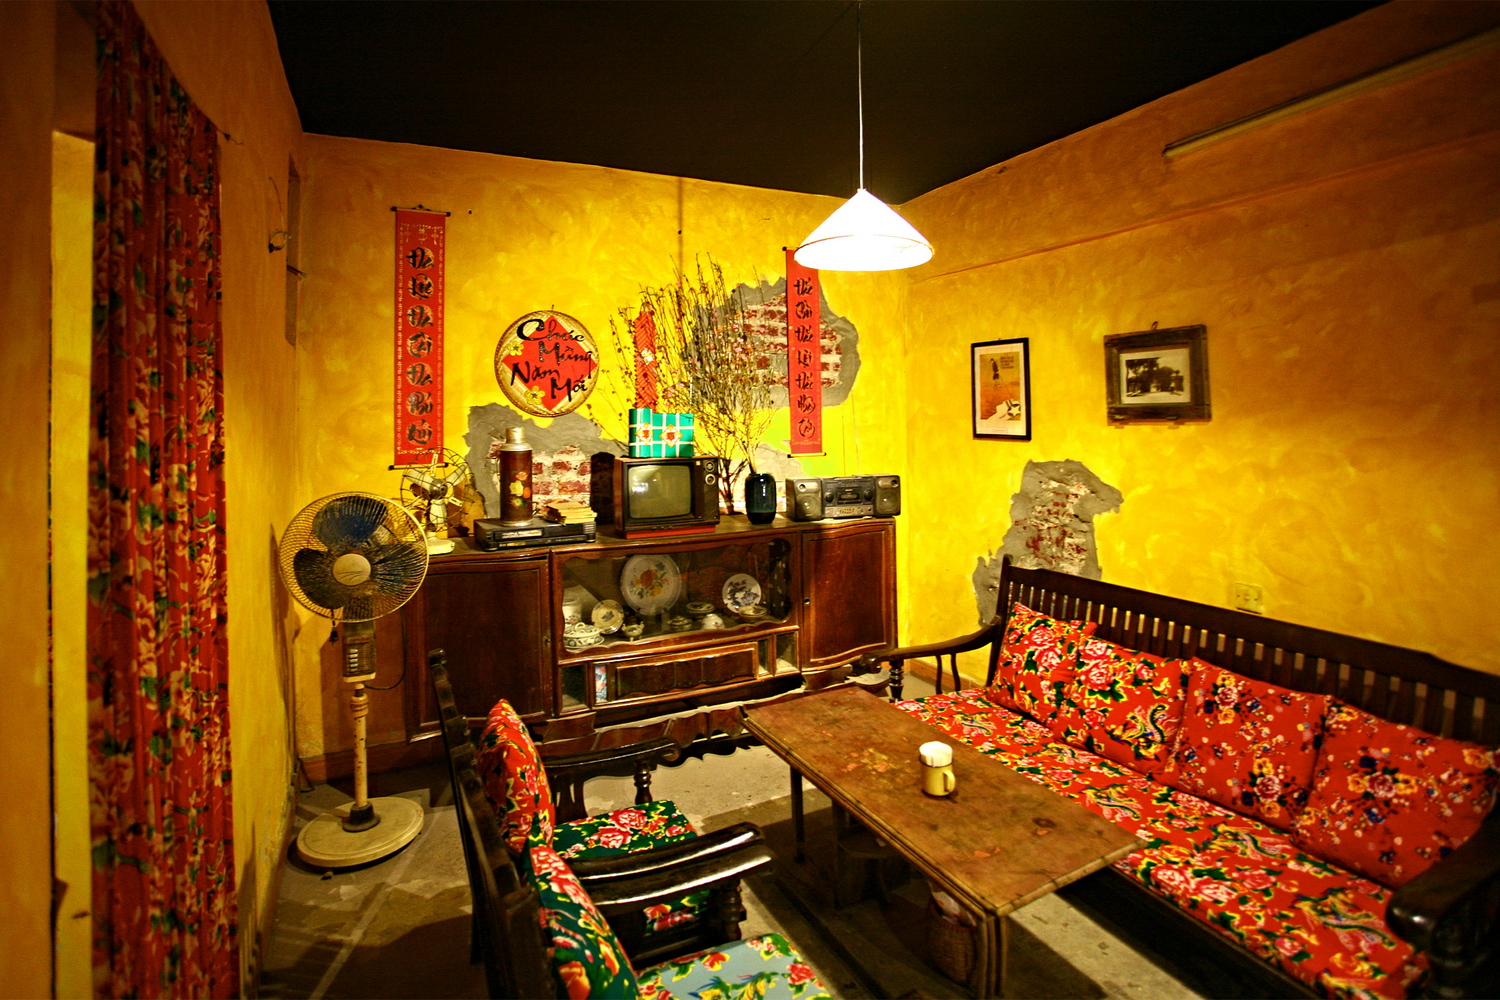 Even the lighting adds to the shop's subsidy era ambience. There is a space that is arranged just like a living room of that period, with a typical cupboard and a wooden salon set. Many decorations in the café are a throwback including peacock blanket covers, black and white TV, radio, thermos, and desk fans. Small peach branches and traditional square cake banh chung, and the Vietnamese distich evoke a traditional Tet atmosphere of those times.